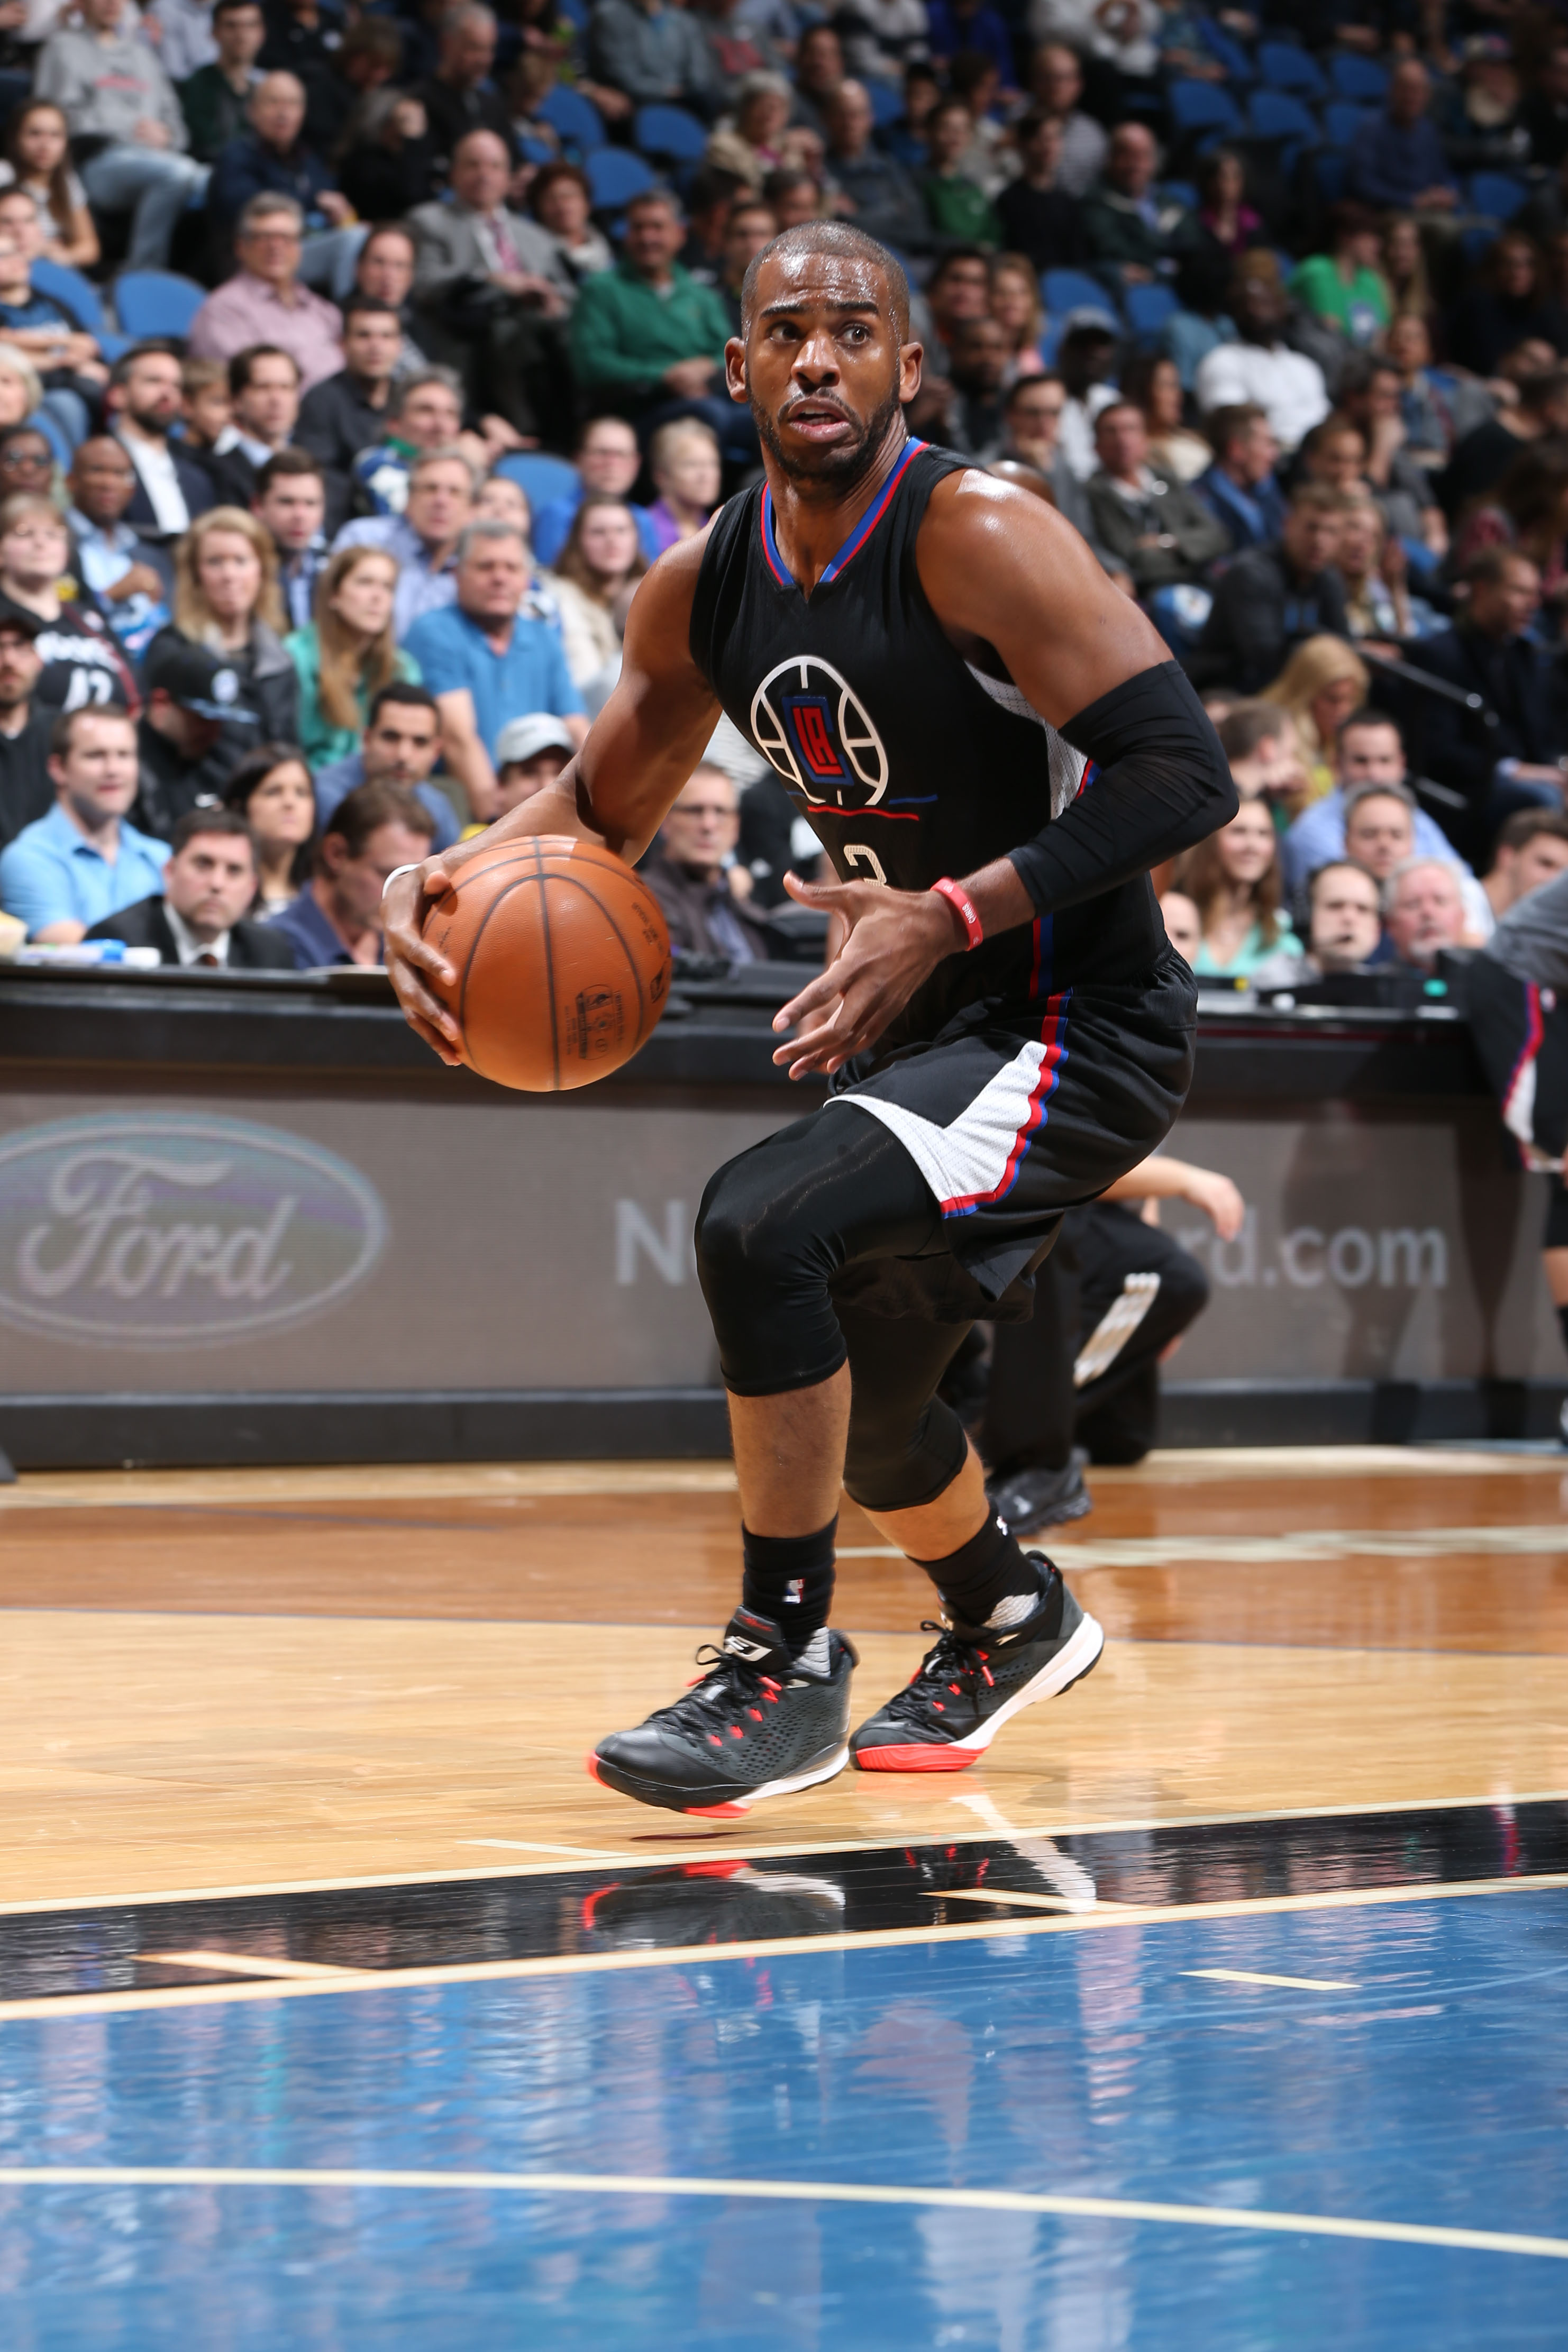 MINNEAPOLIS, MN - MARCH 30:  Chris Paul #3 of the Los Angeles Clippers drives to the basket against the Minnesota Timberwolves on March 30, 2016 at Target Center in Minneapolis, Minnesota. (Photo by David Sherman/NBAE via Getty Images)